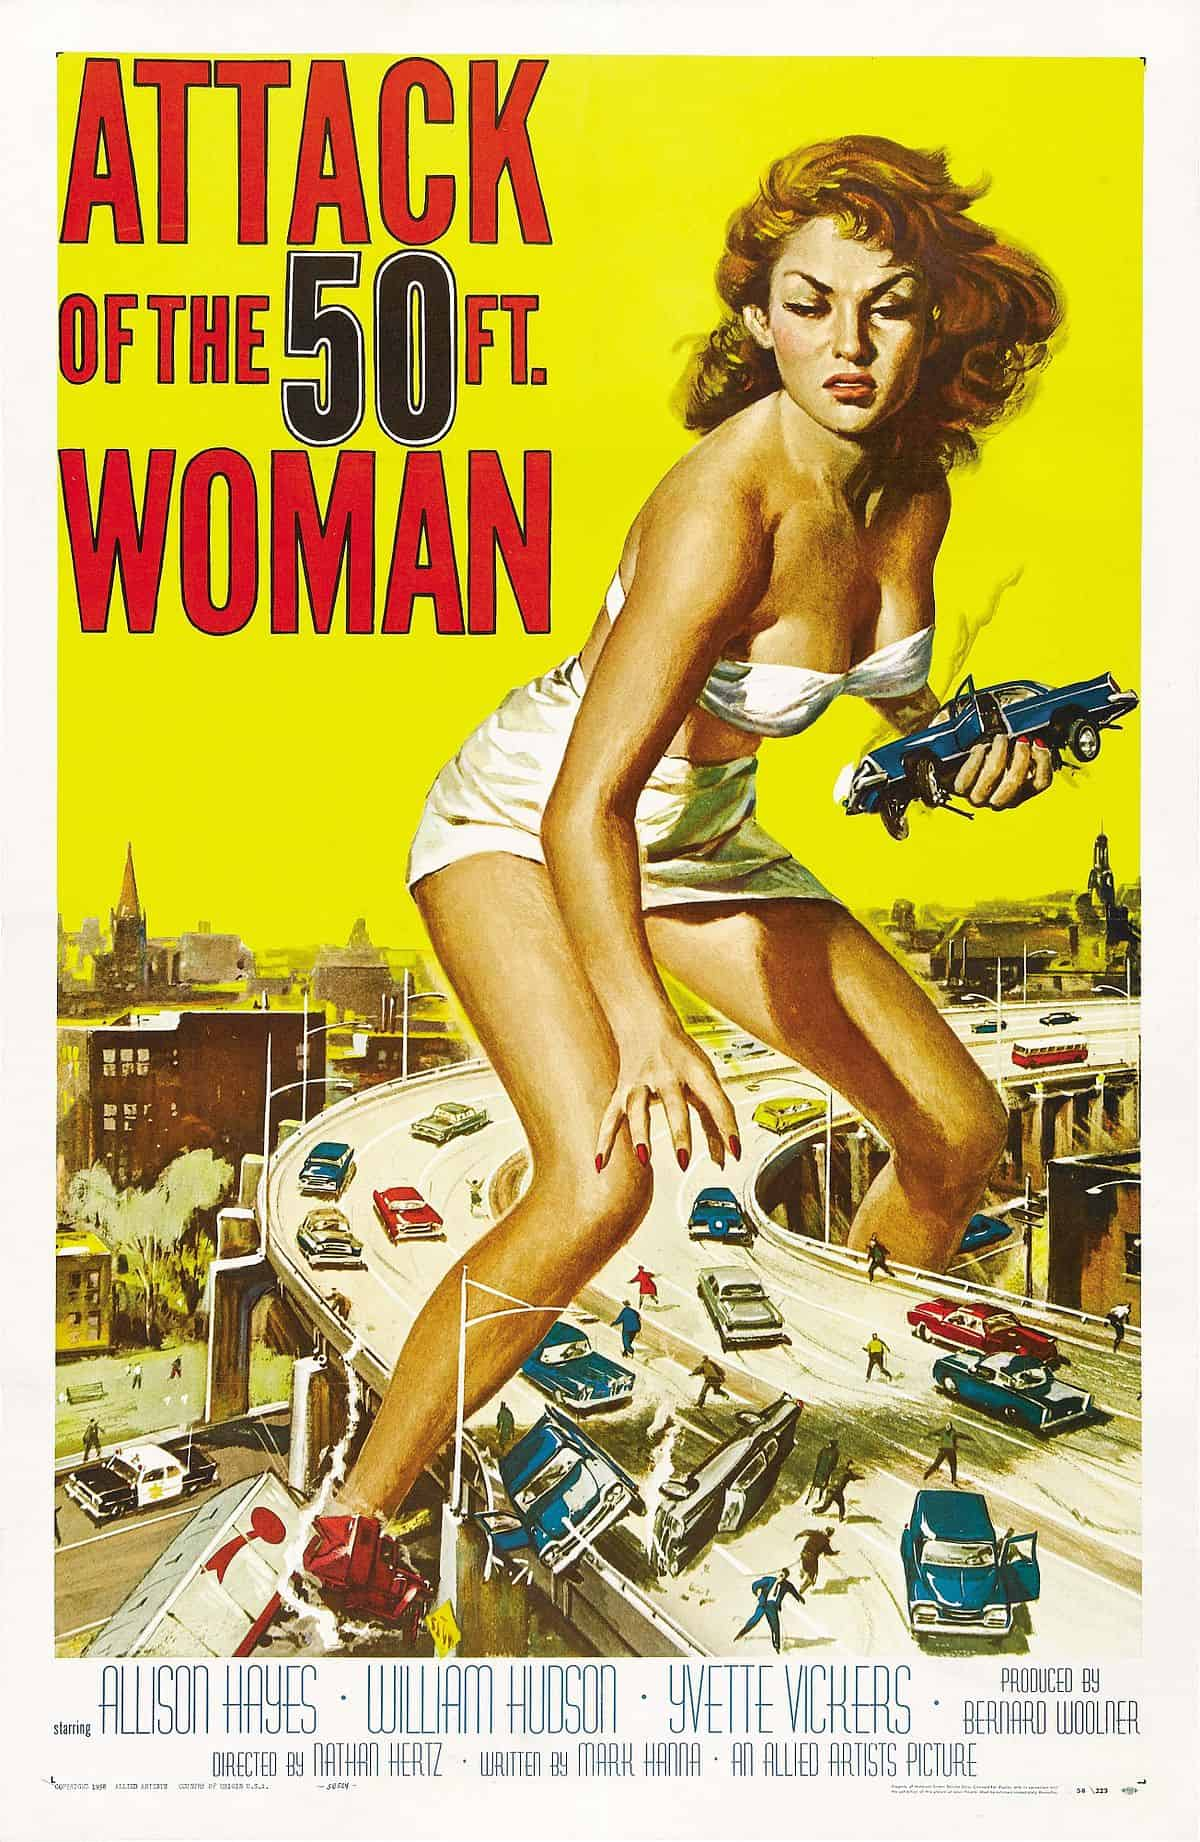 Movie Posters We Love: Attack of the 50 Foot Woman